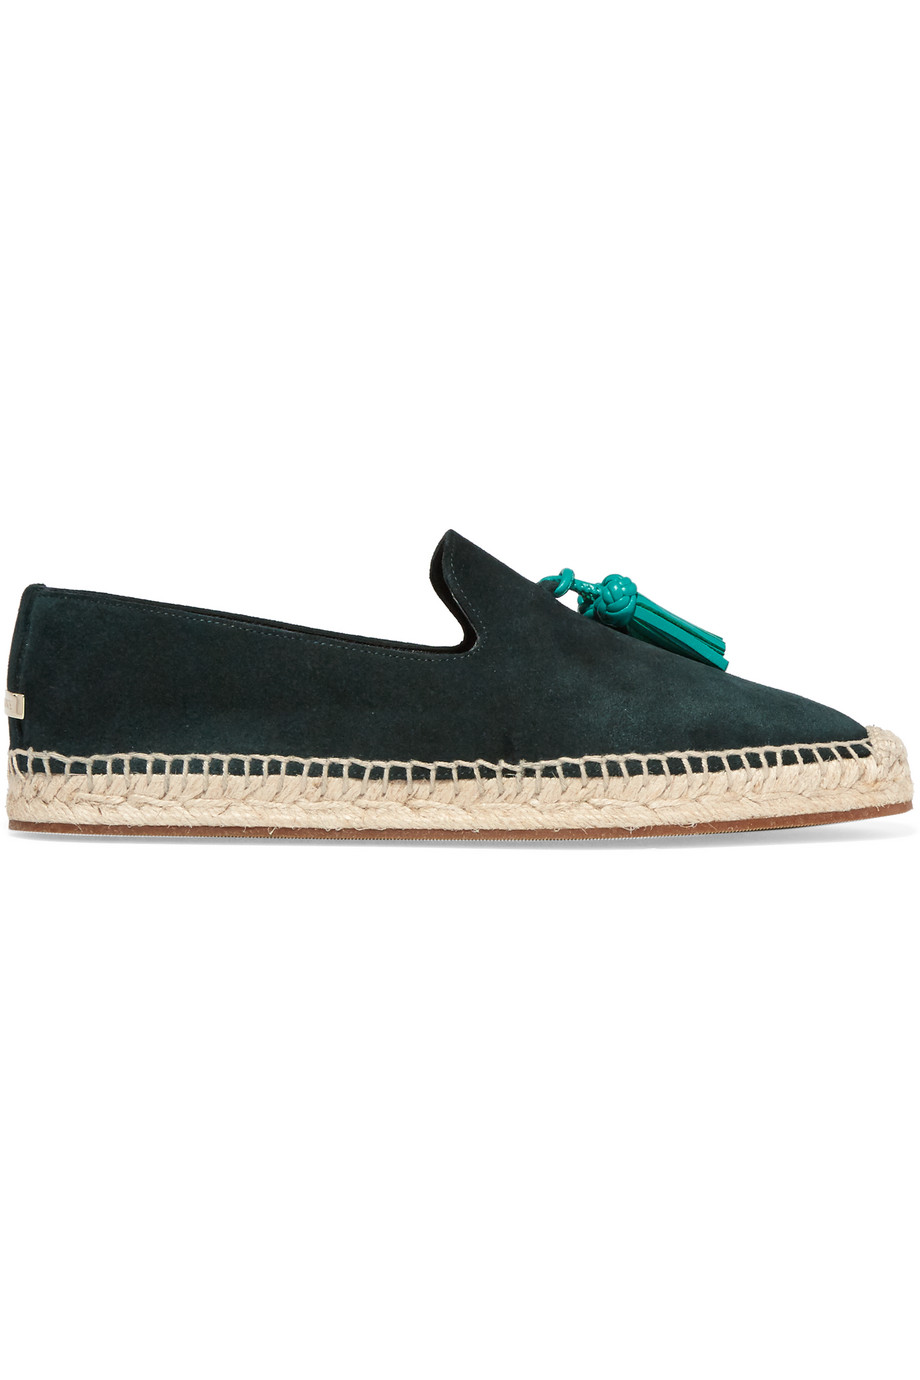 Burberry London London Tasseled Leather and Suede Espadrilles, Dark Green, Women's US Size: 4.5, Size: 35